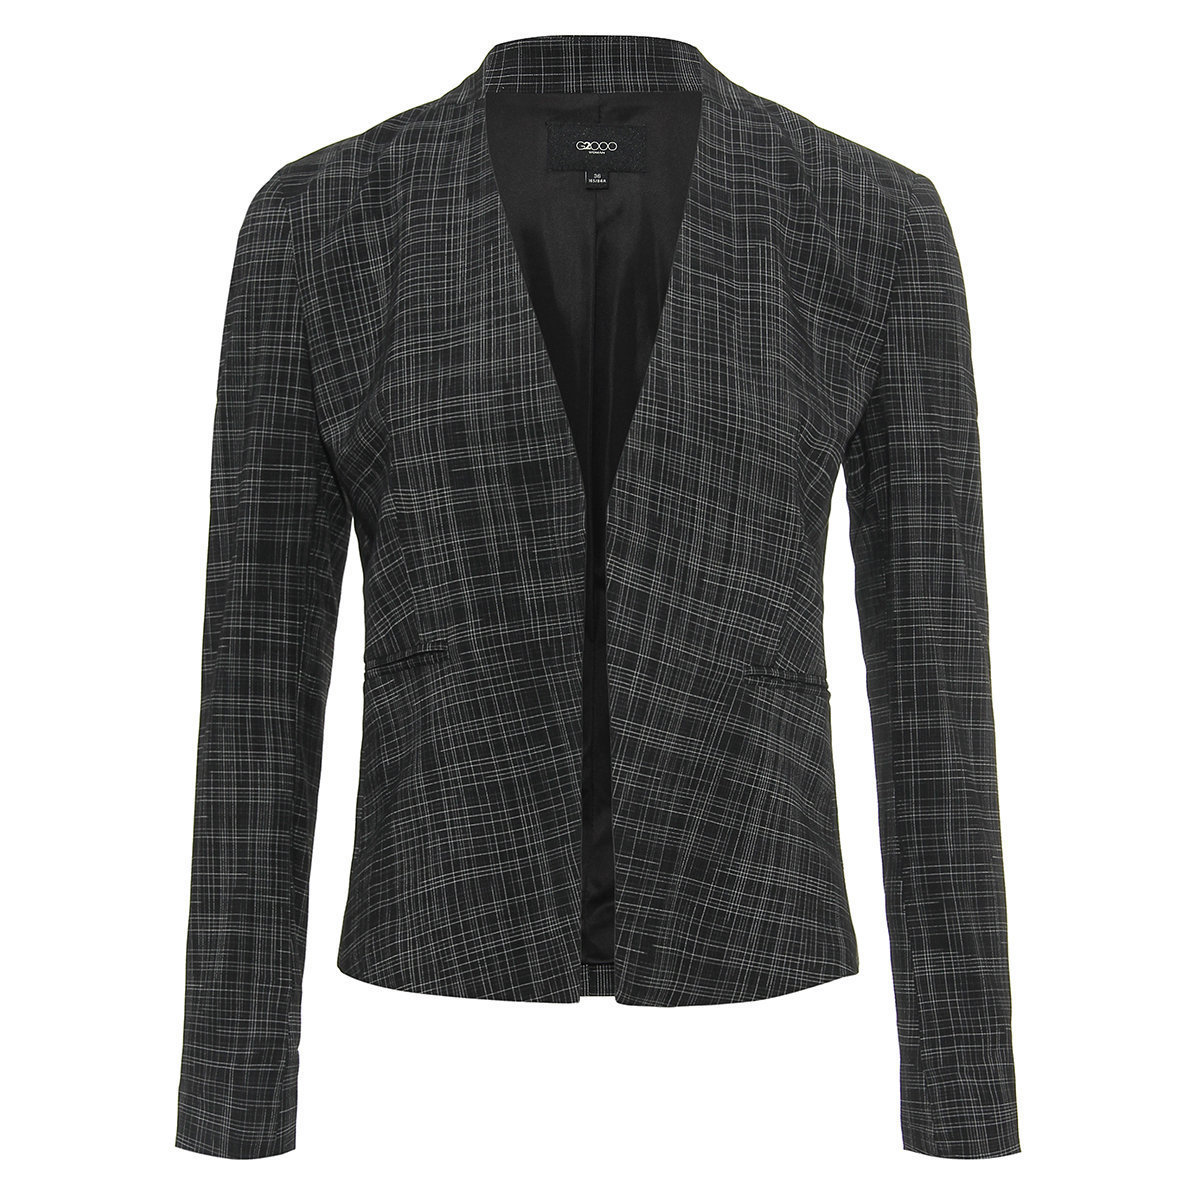 WOMEN'S SUIT (Black and White pattern)